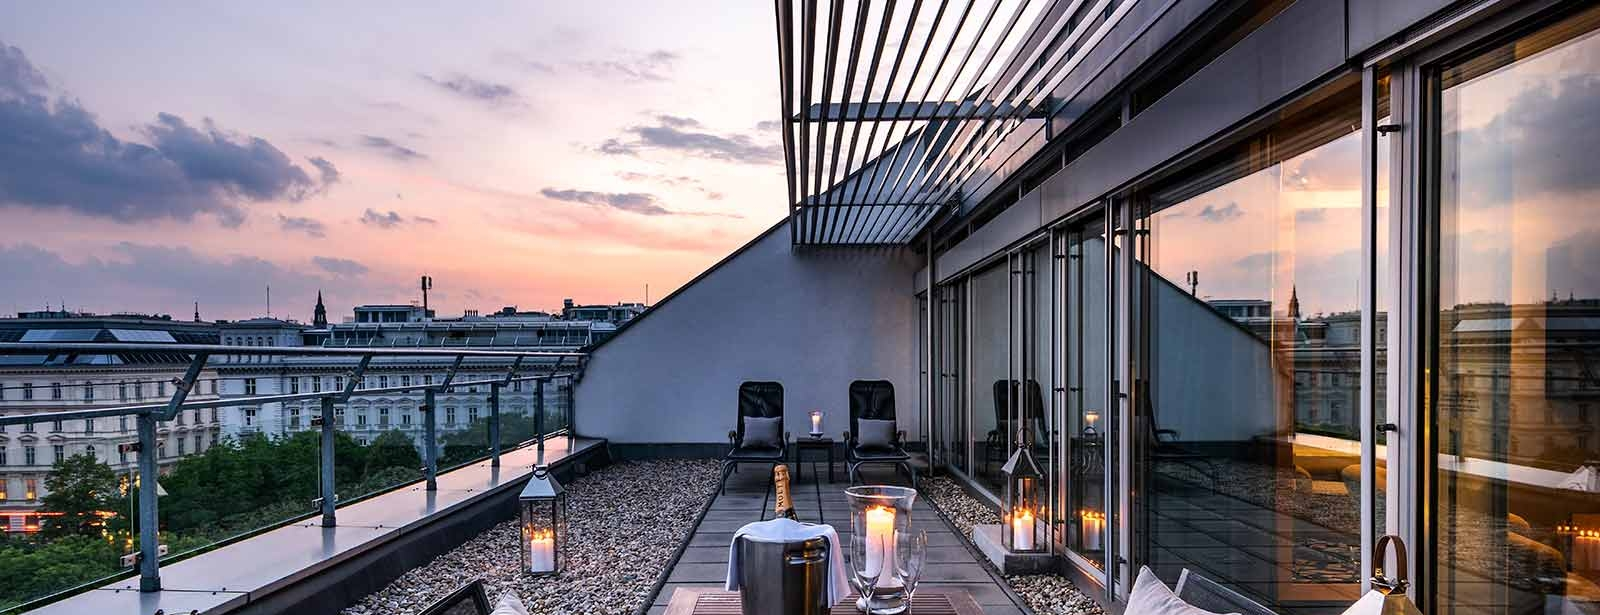 Le Méridien Vienna - Suites in Vienna - Rooftop Terrace Suite by night can be used for private dinners